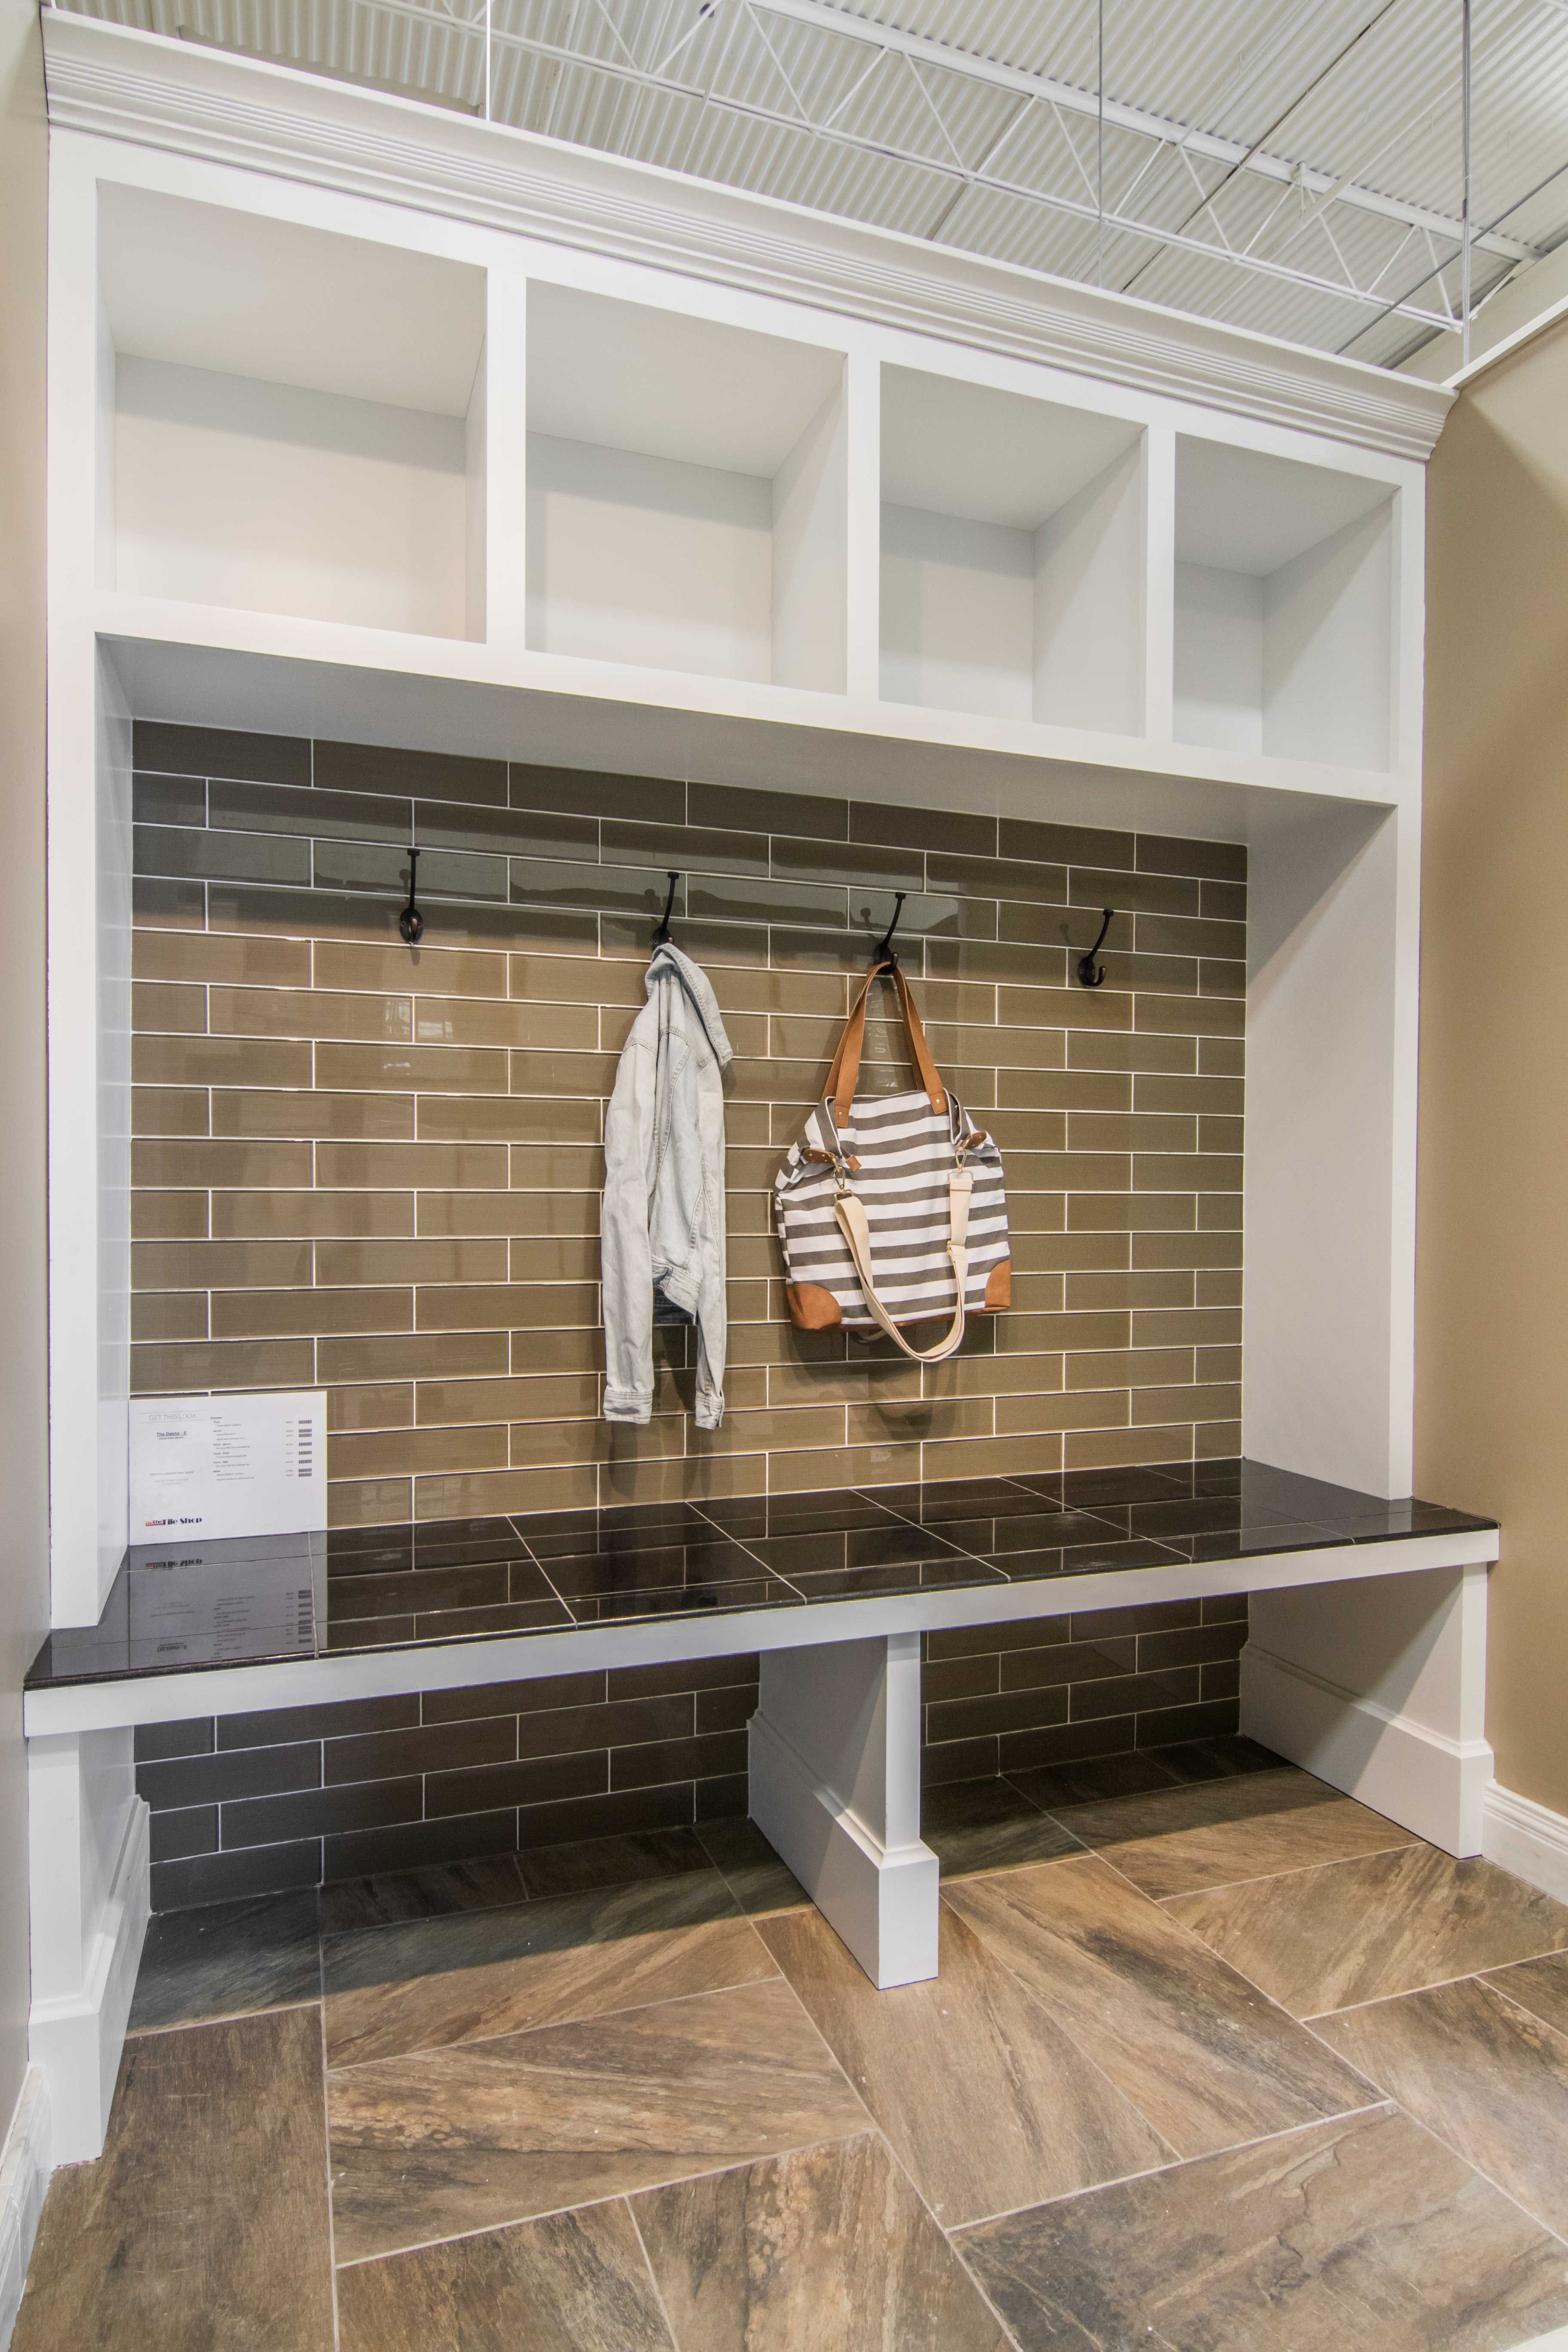 Entryway mudroom khaki toned wall tile halsted glass subway entryway mudroom khaki toned wall tile halsted glass subway tile 3 x 12 in dailygadgetfo Choice Image